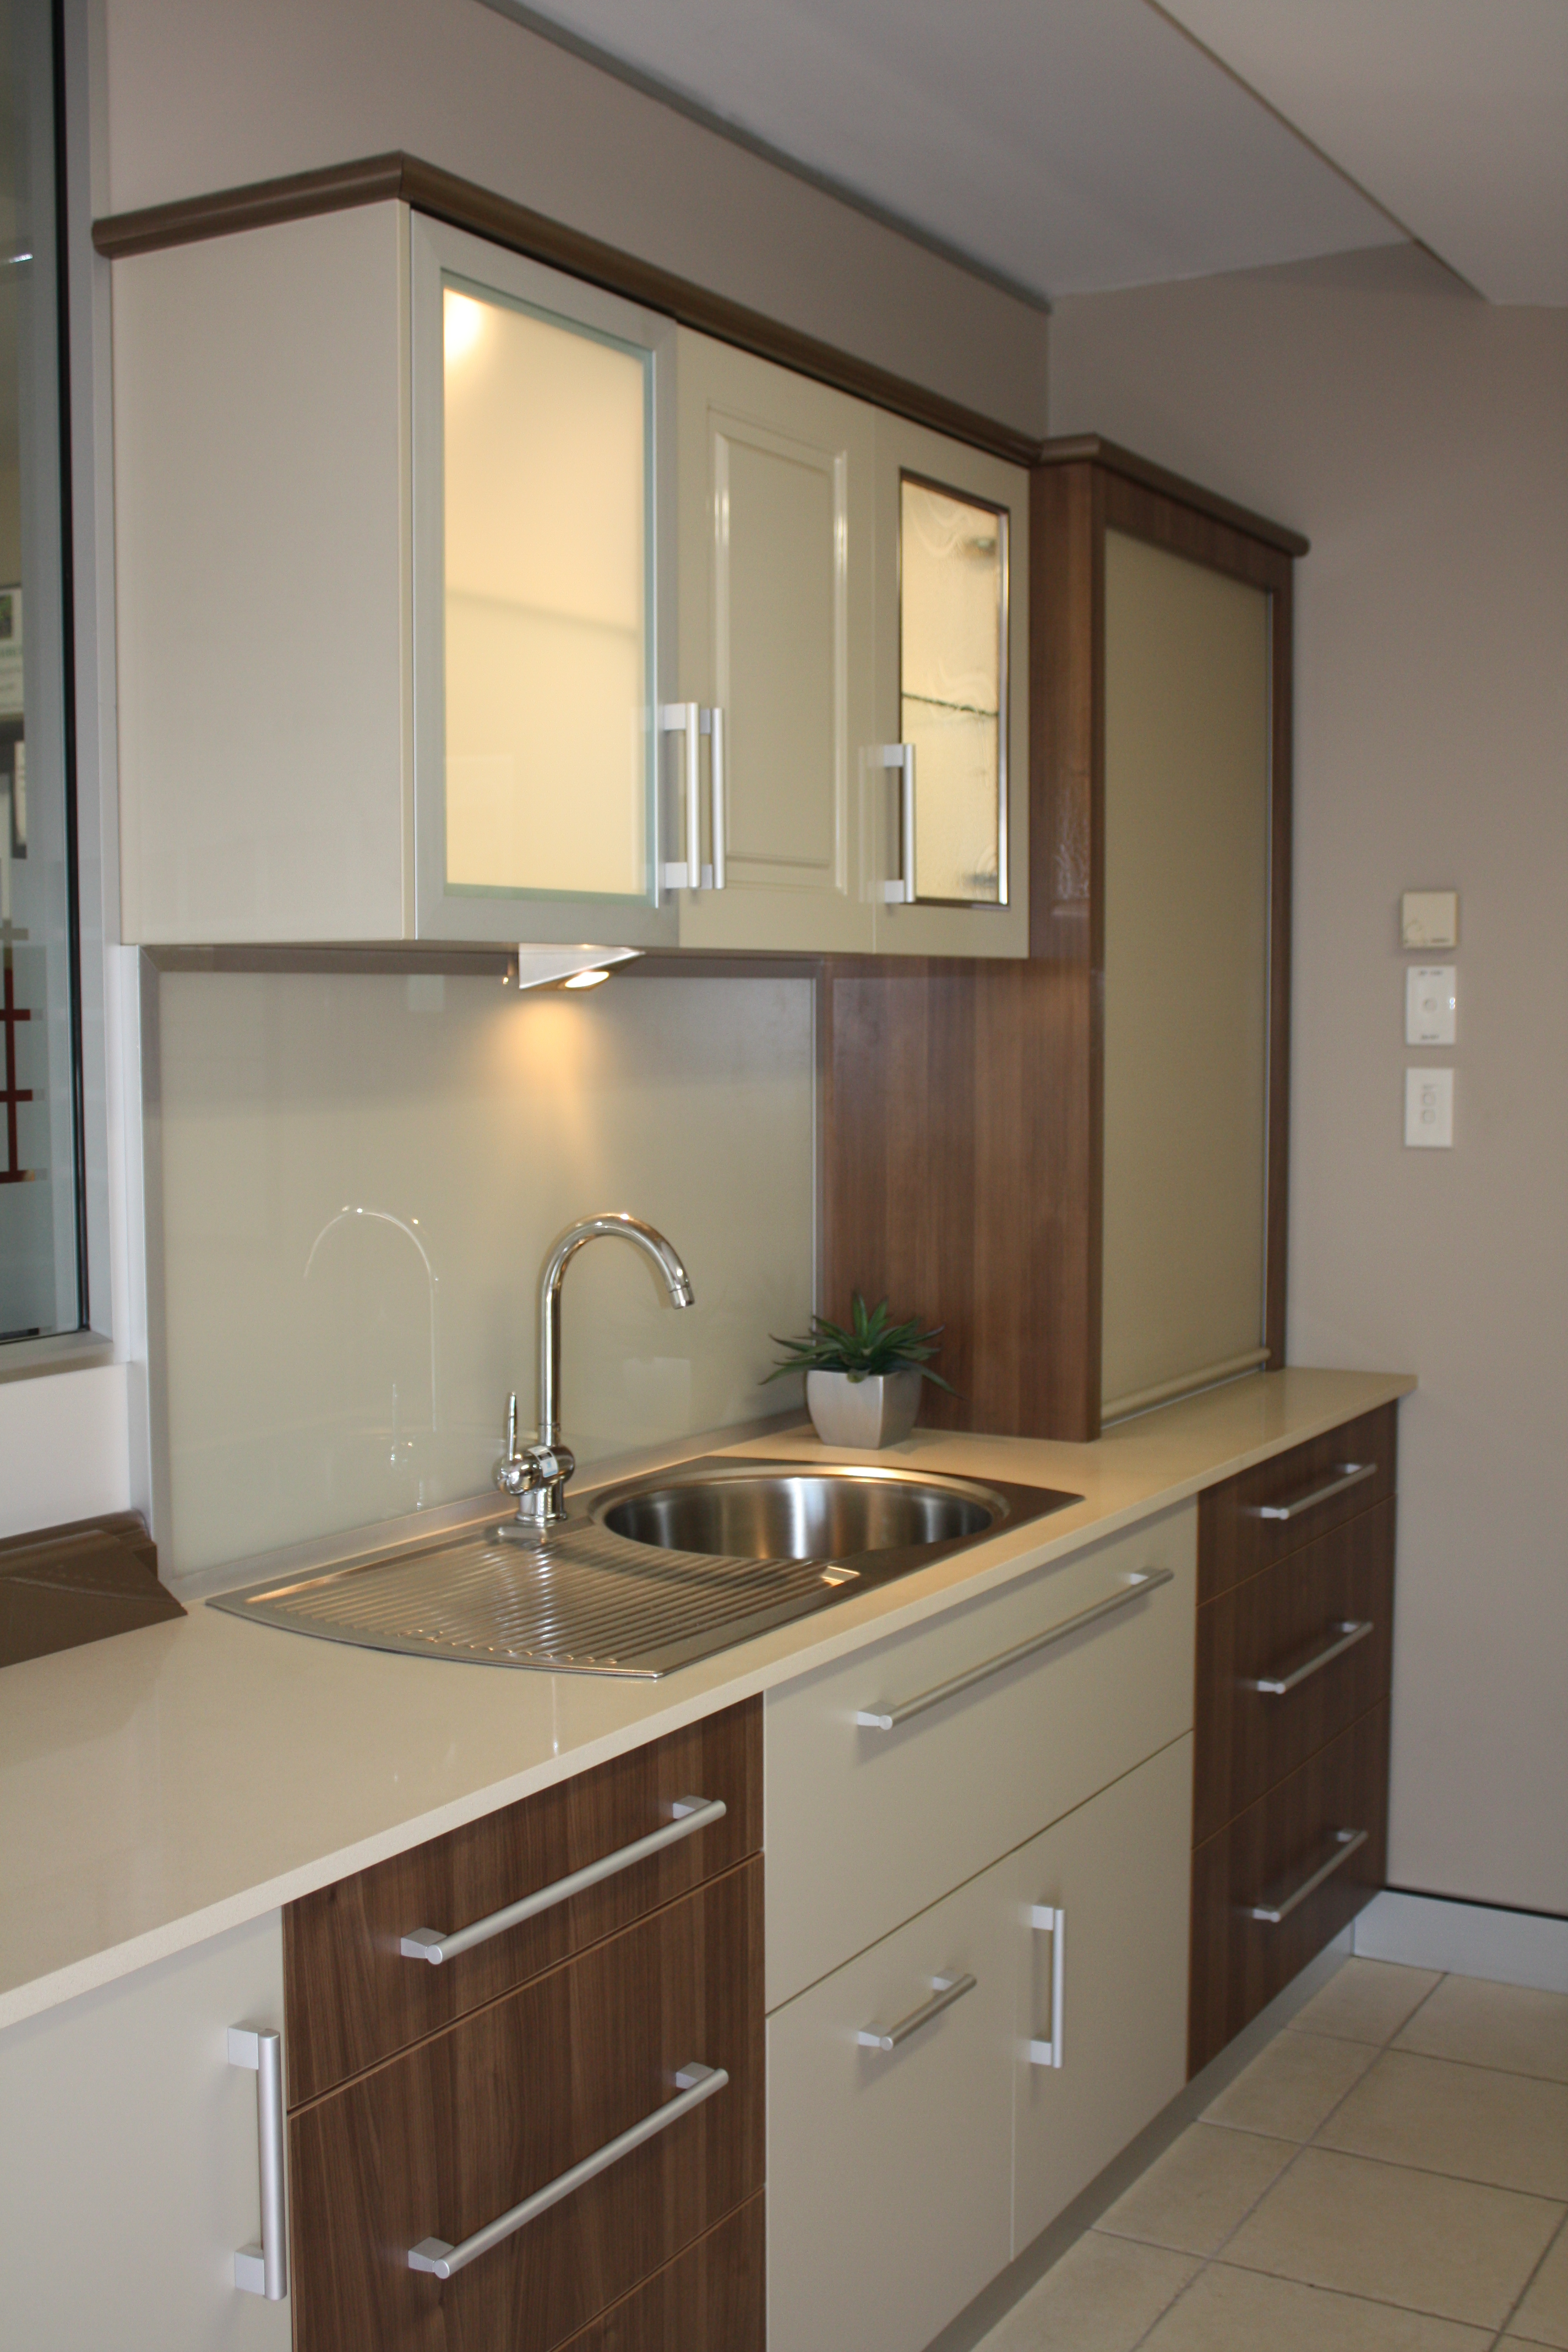 Use of composite finishes